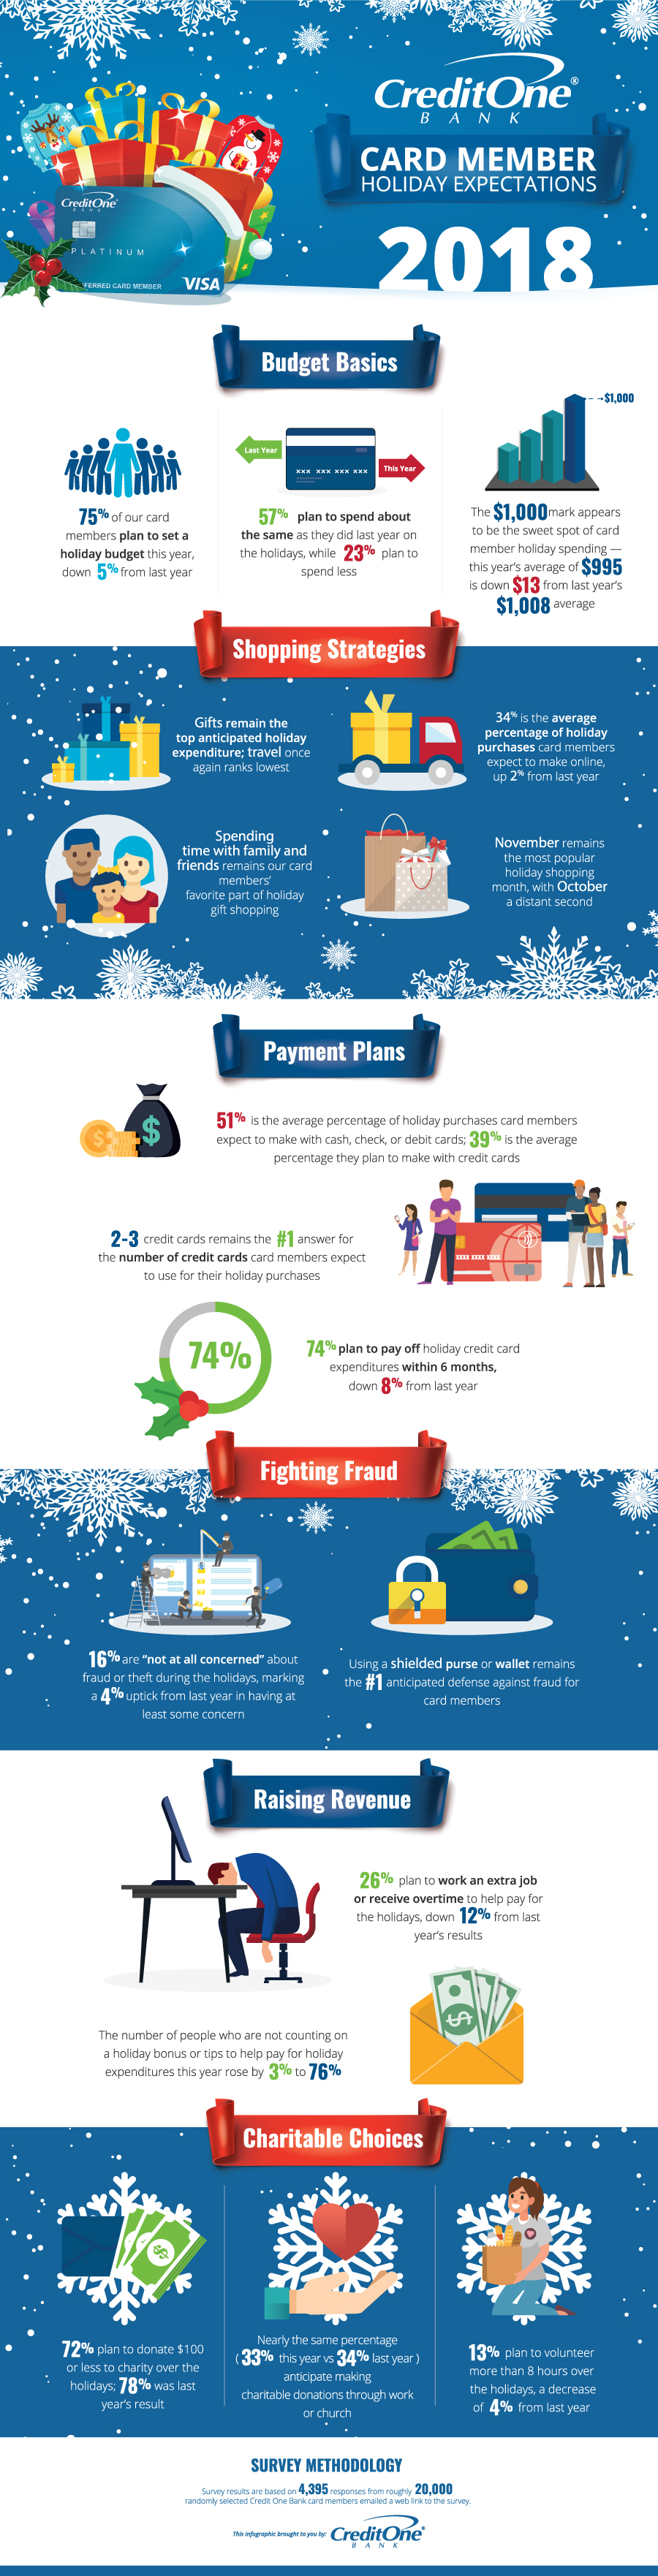 Card Member Expected Holiday Spending & More [Infographic]